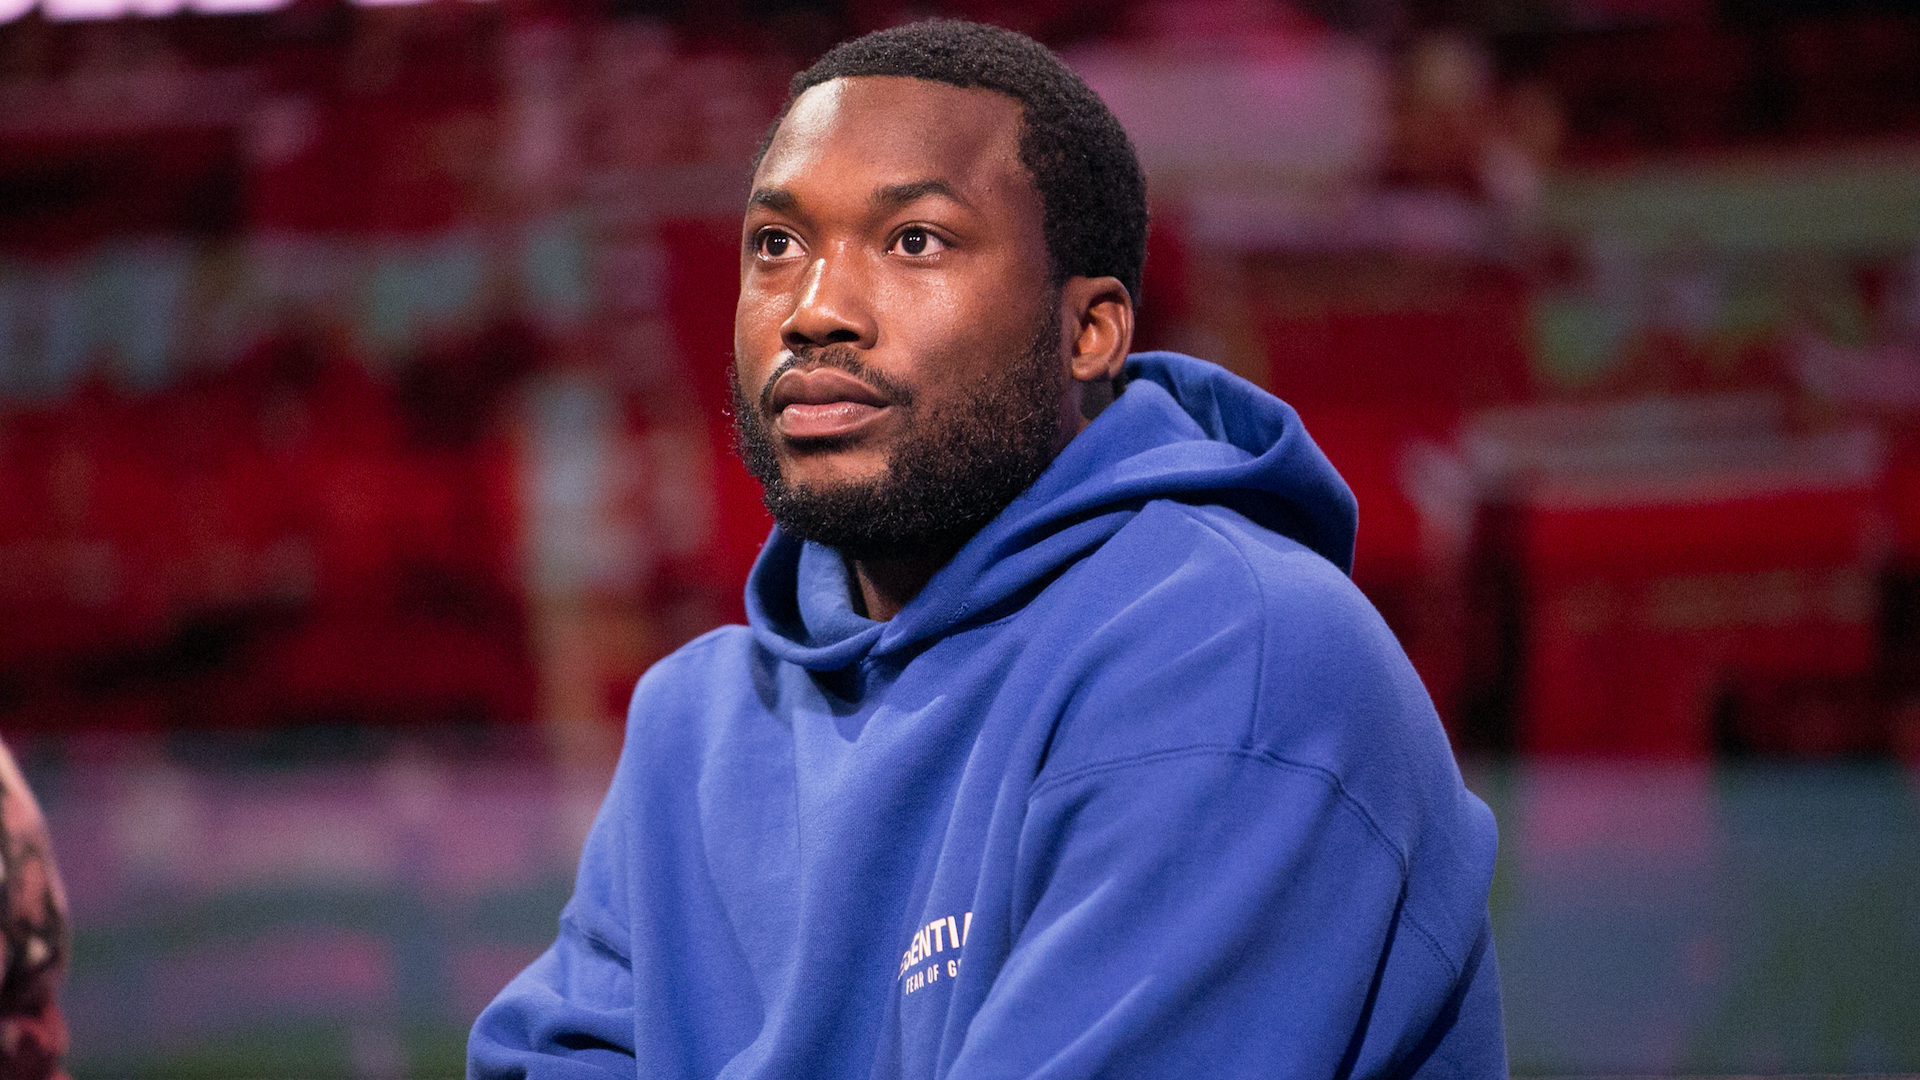 Vanessa Bryant Calls Out Meek Mill Over 'Disrespectful' Kobe Line: 'This Lacks Respect and Tact'